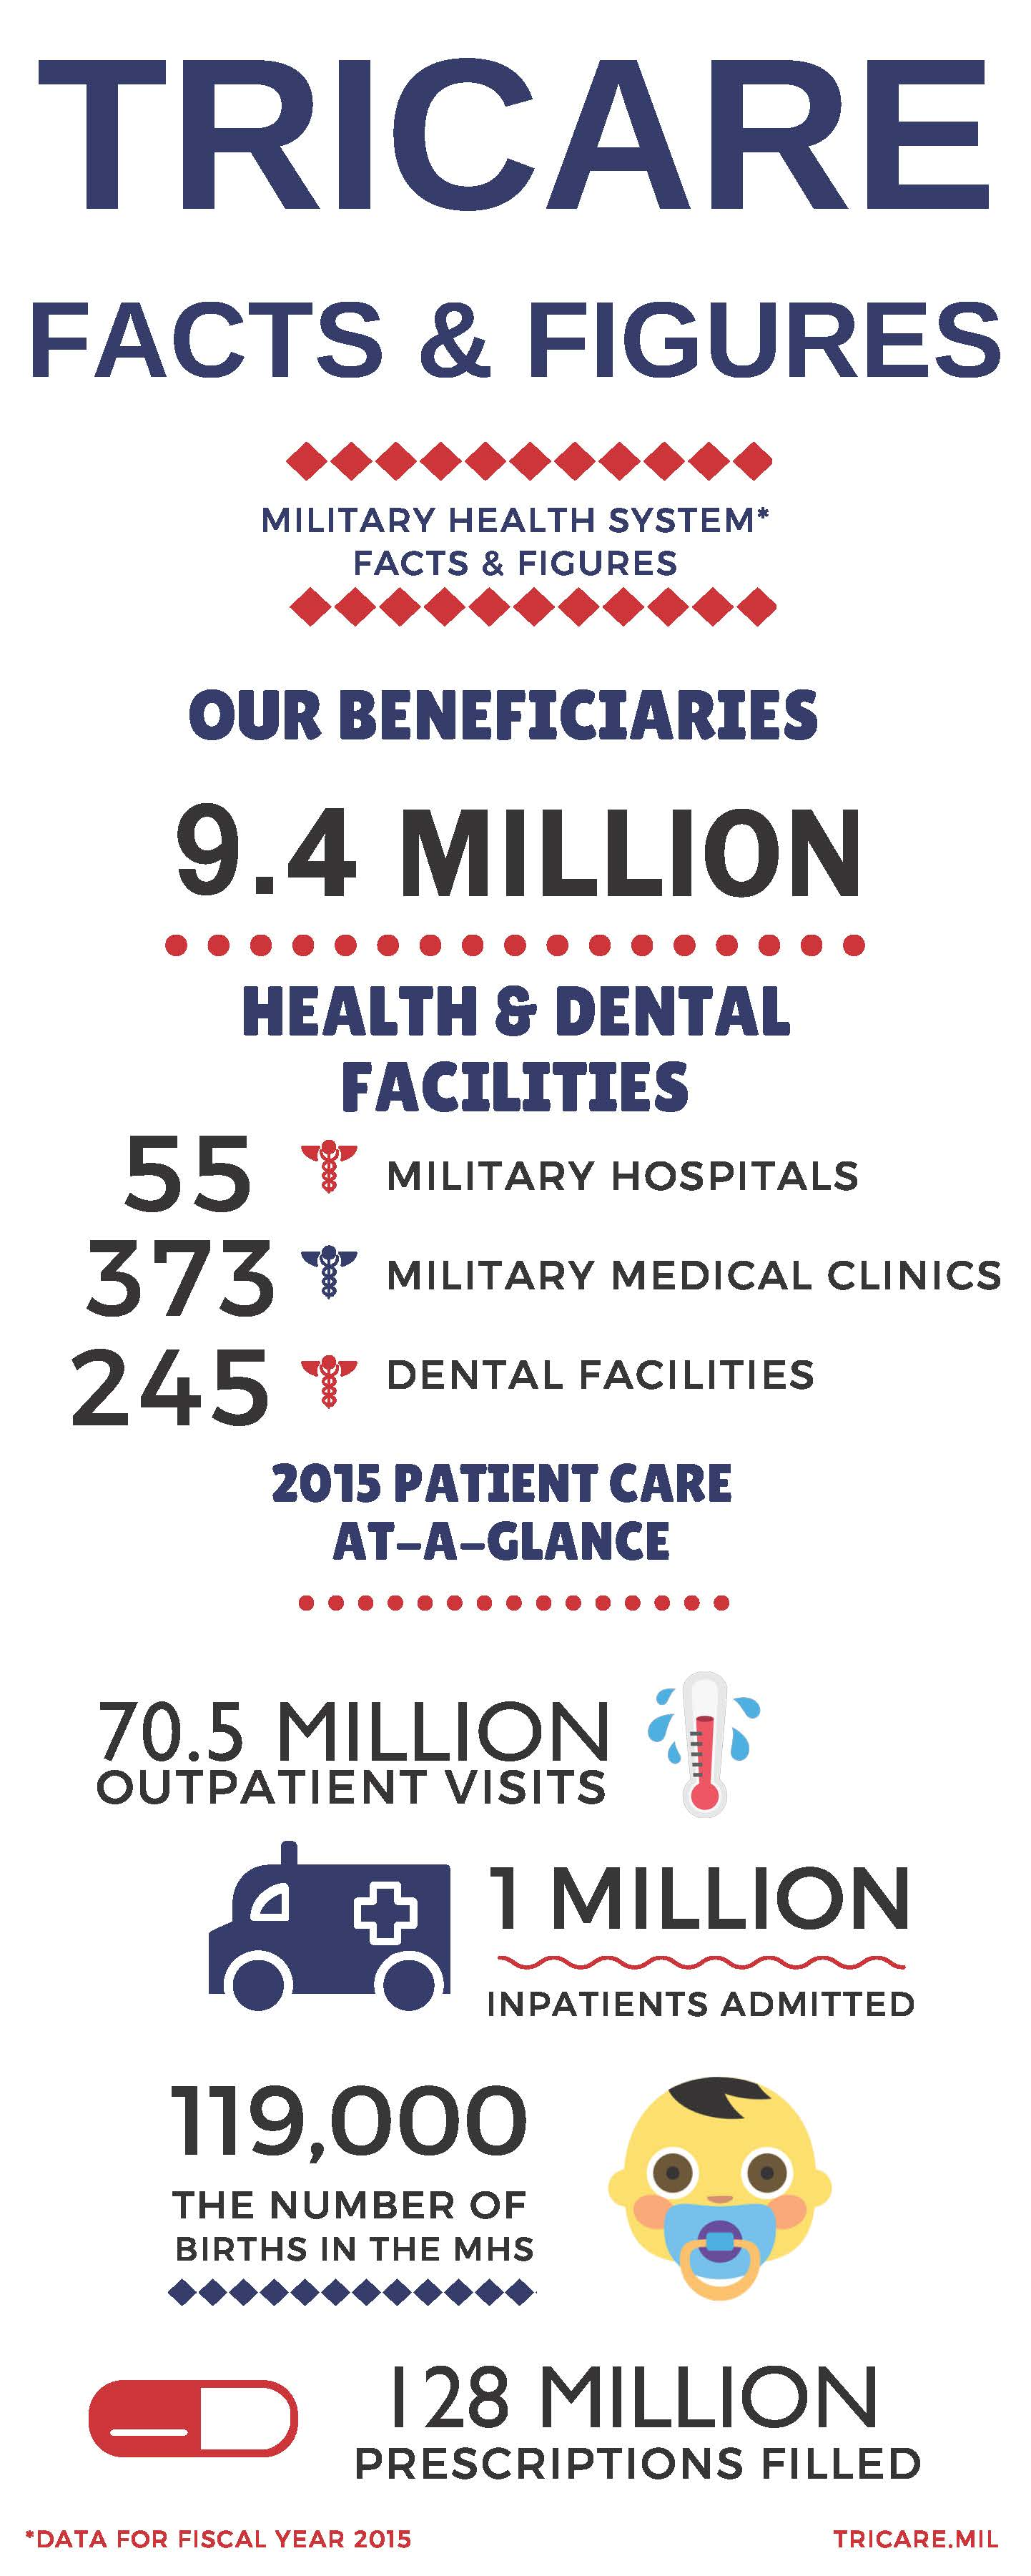 TRICARE Facts and Figures